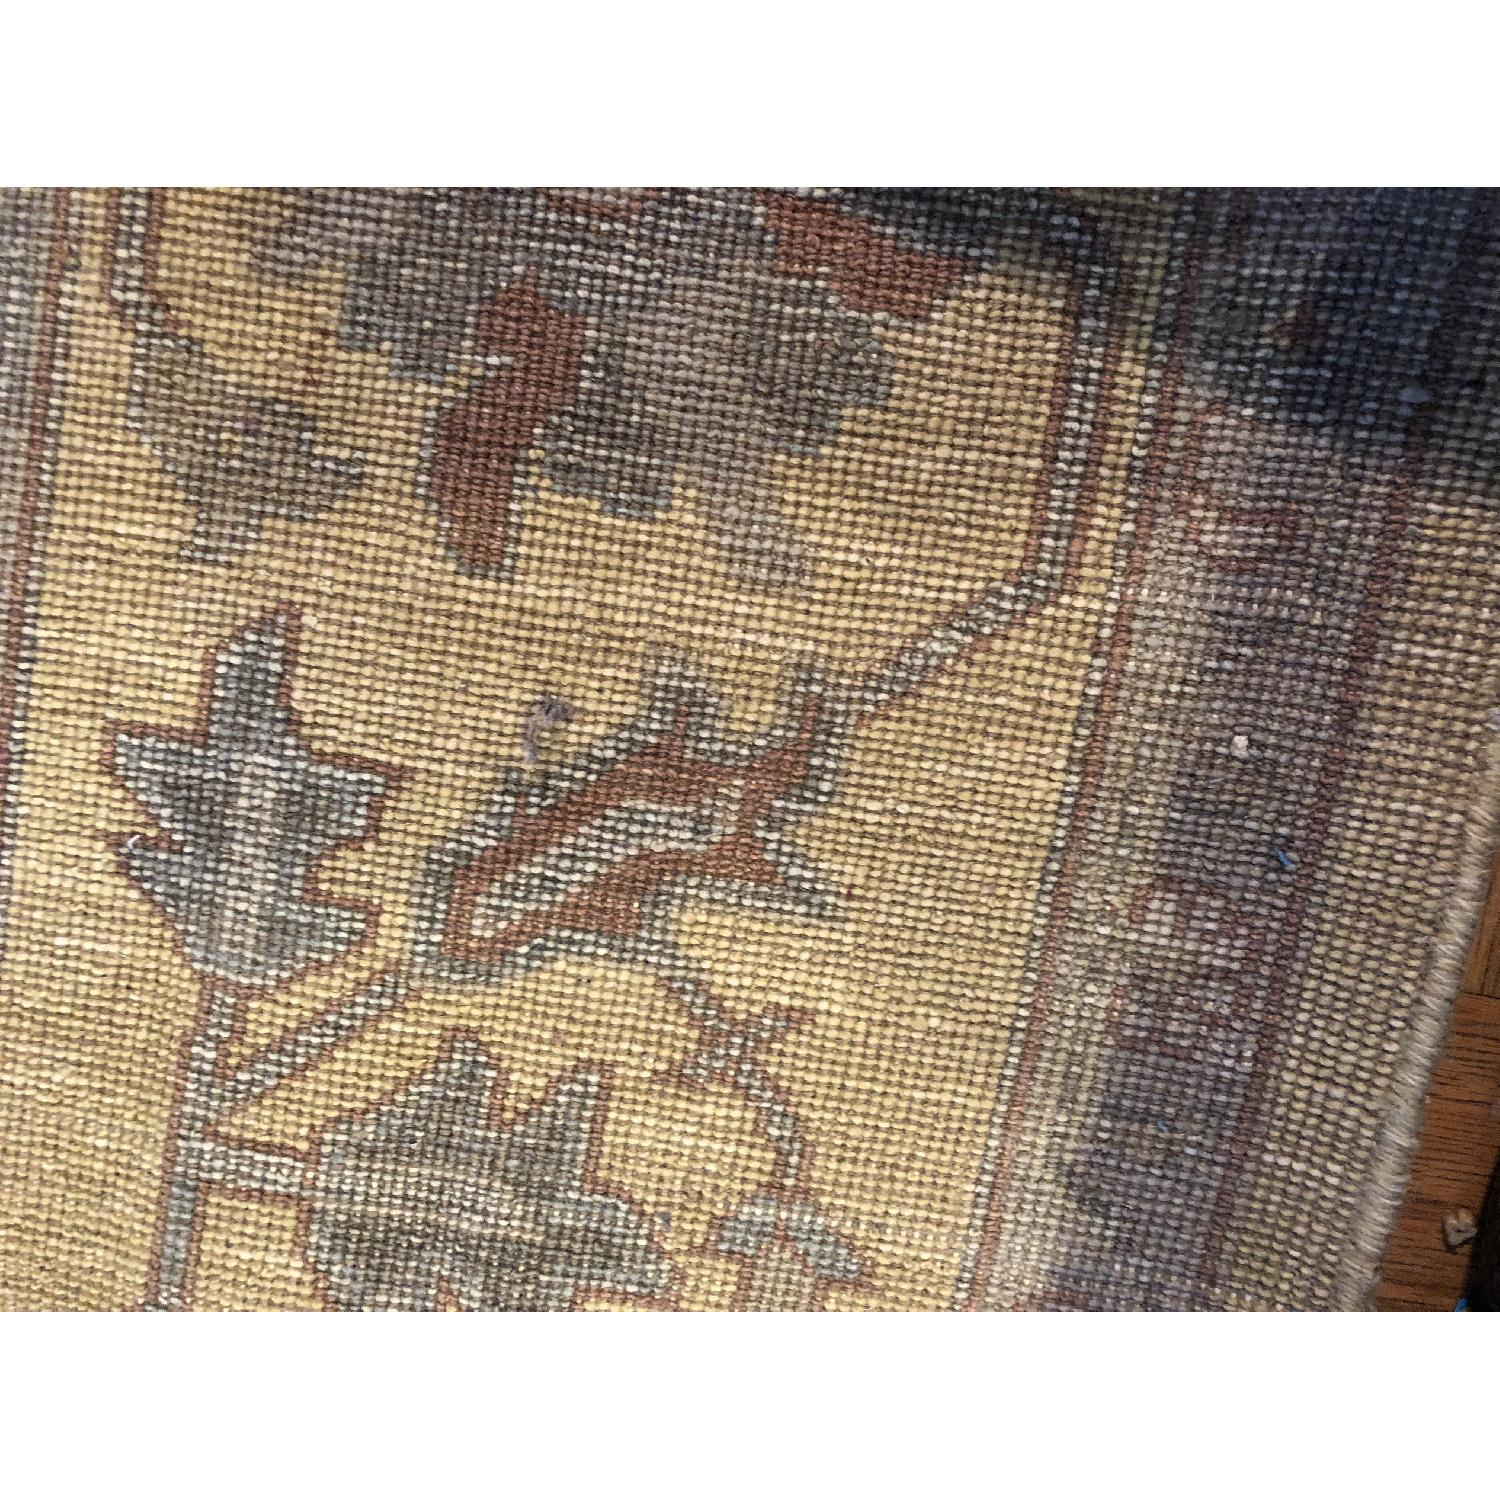 ABC Carpet and Home Beetie Classio Yellow Oriental Carpet - image-8